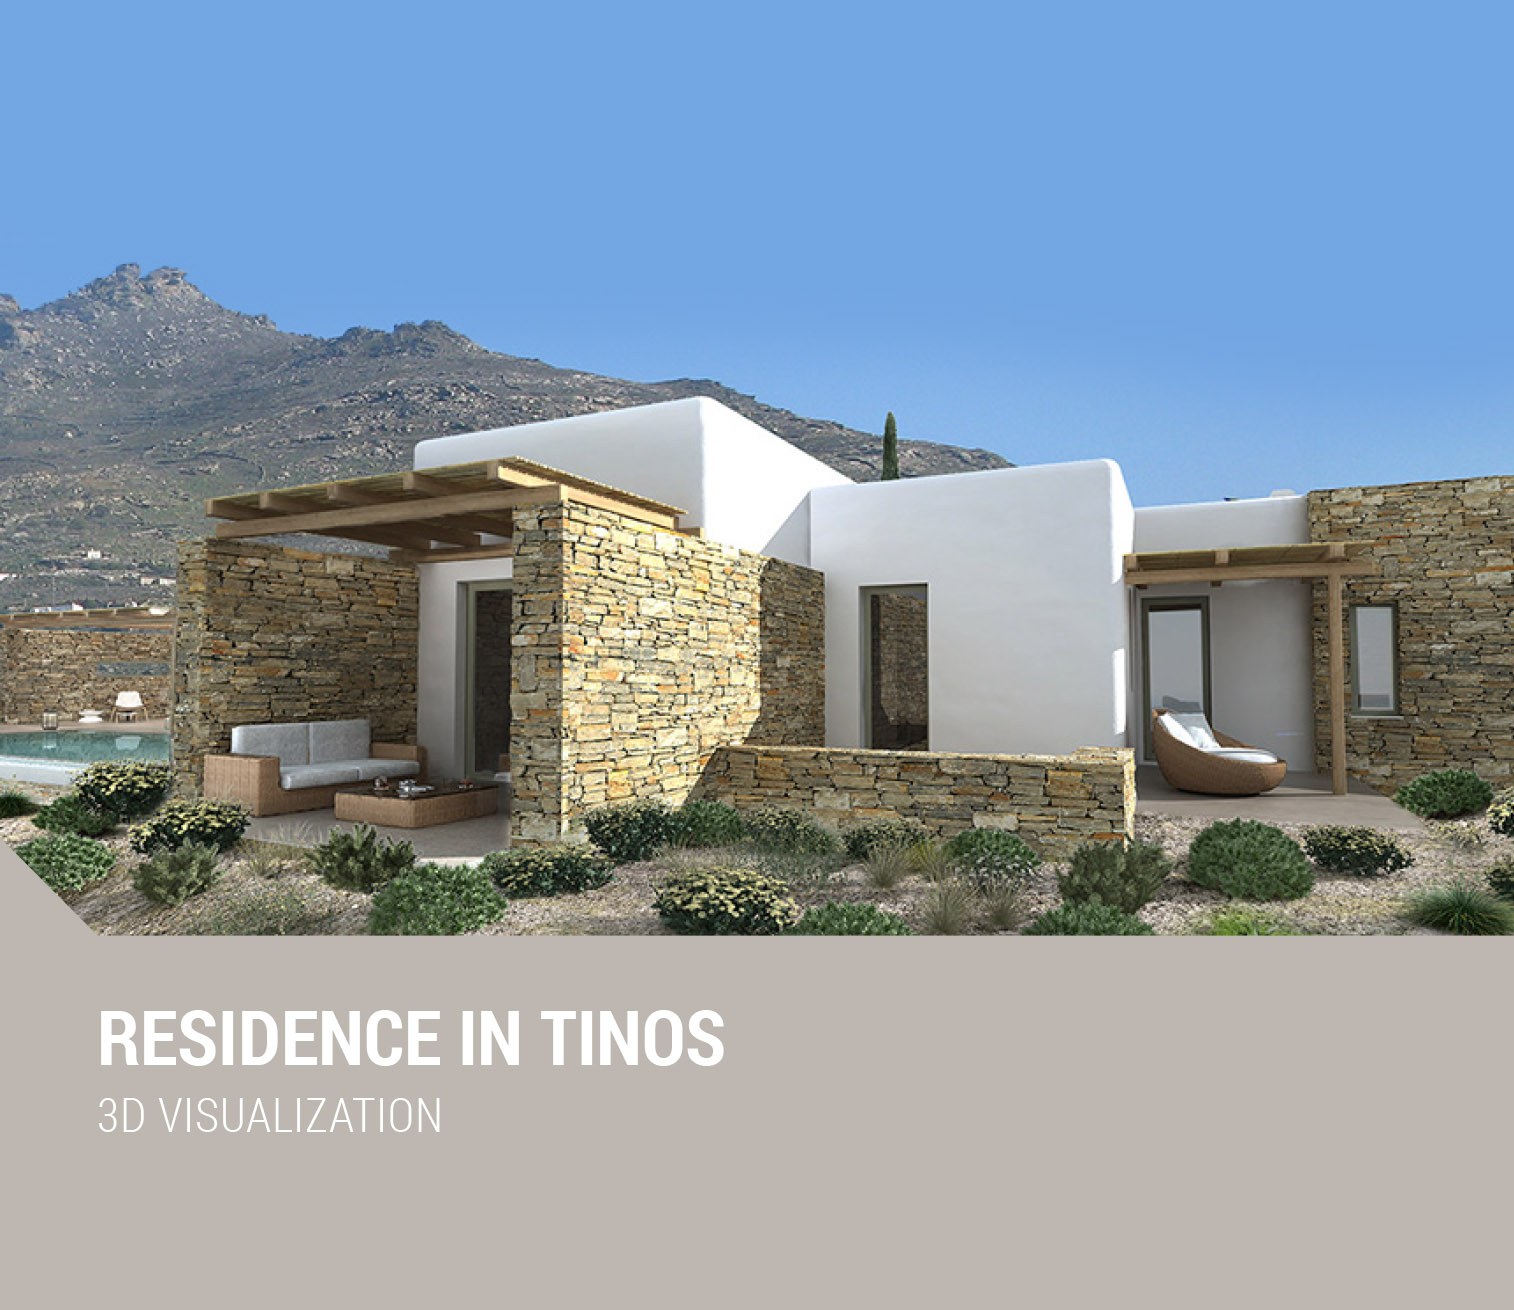 Schema Dimitra Chrona designer, creative director, architectural, 3D visualization, 3D Rendering, branding websites, digital, graphic design, interior design, real estate, luxury property, staging, museum, virtual, art, brochures, exhibitions, logotype, logo, Canada Quebec Montreal Athens Greece schema design residence tinos small.jpg